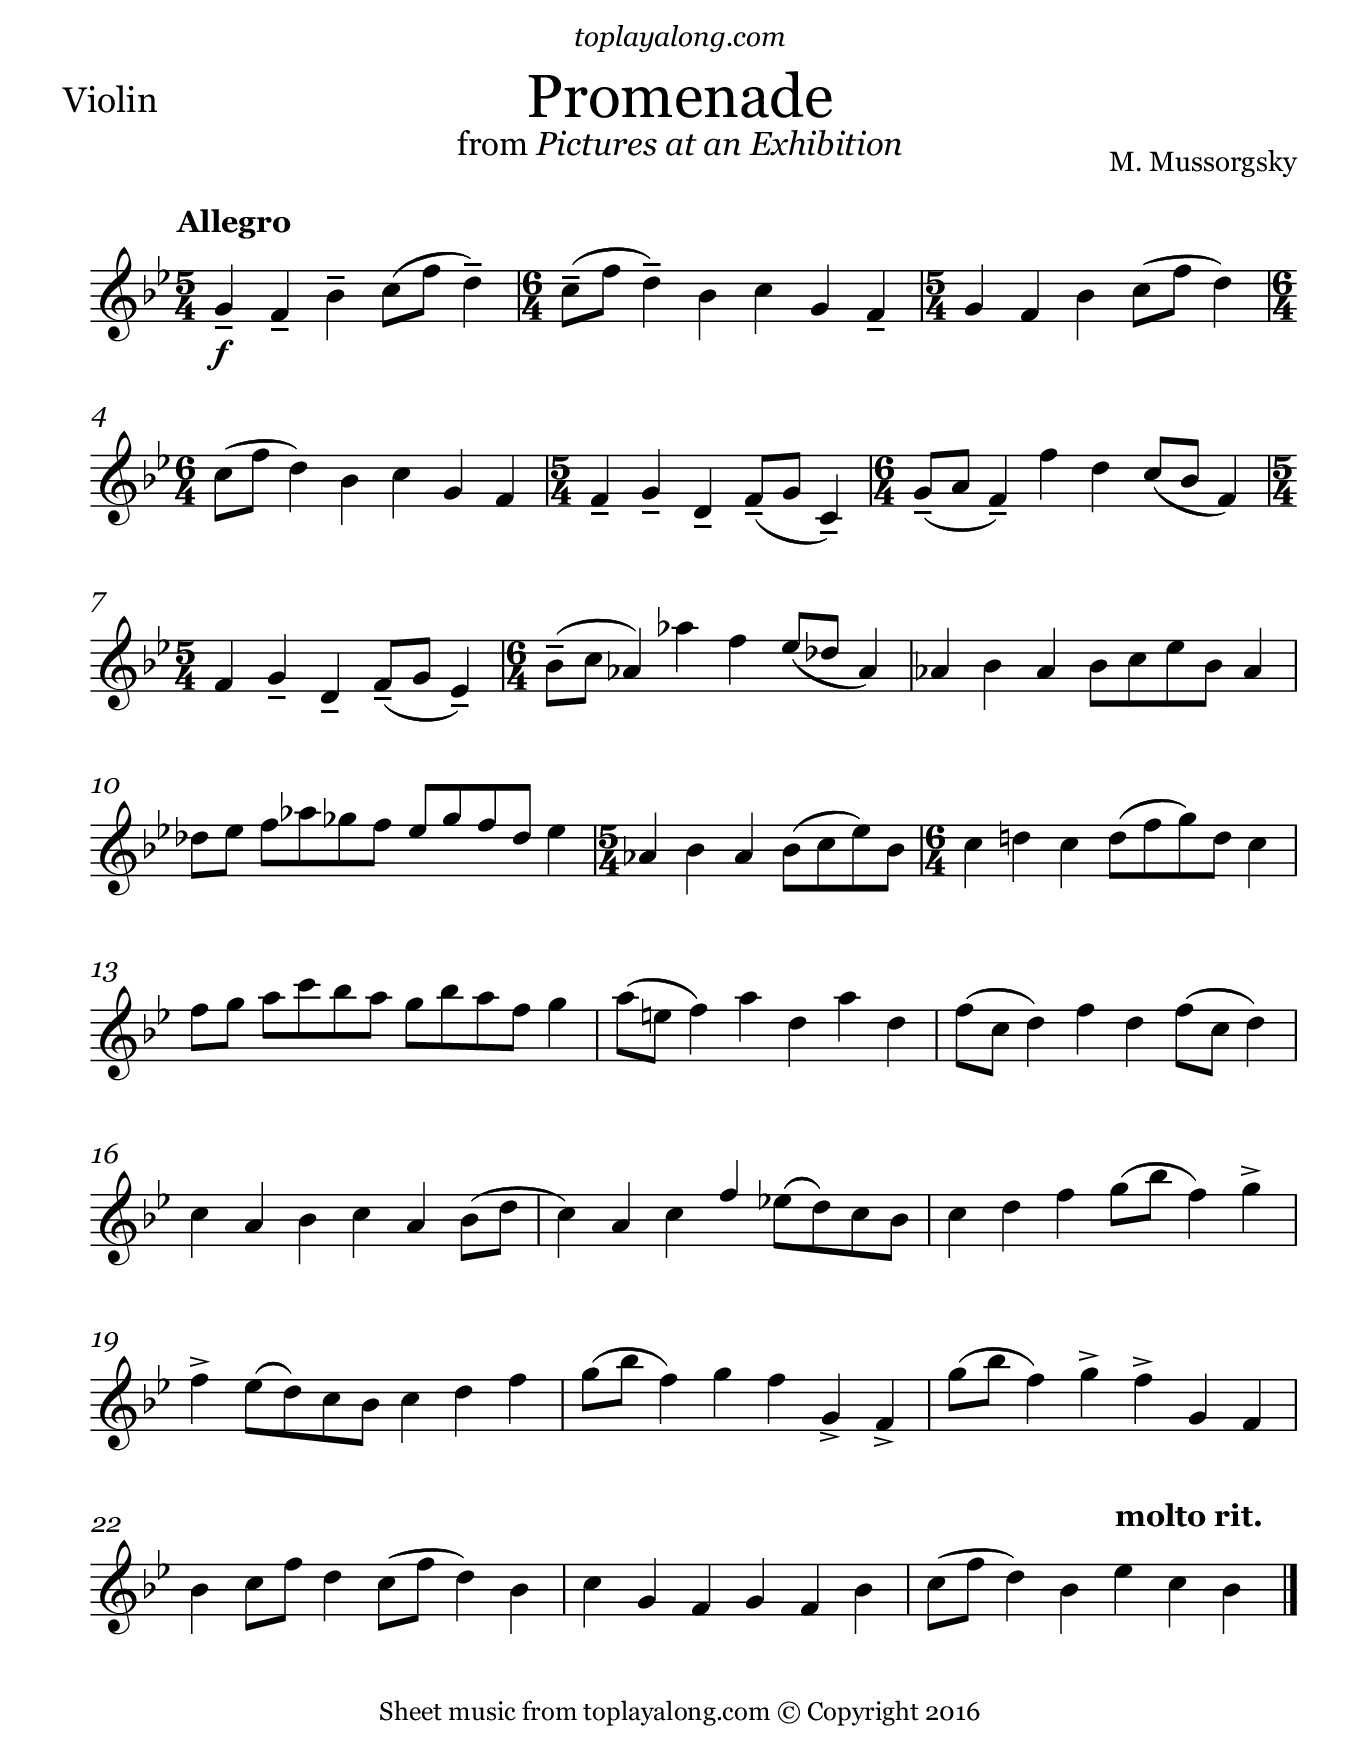 Promenade from Pictures at an Exhibition by Mussorgsky. Sheet music for Violin, page 1.